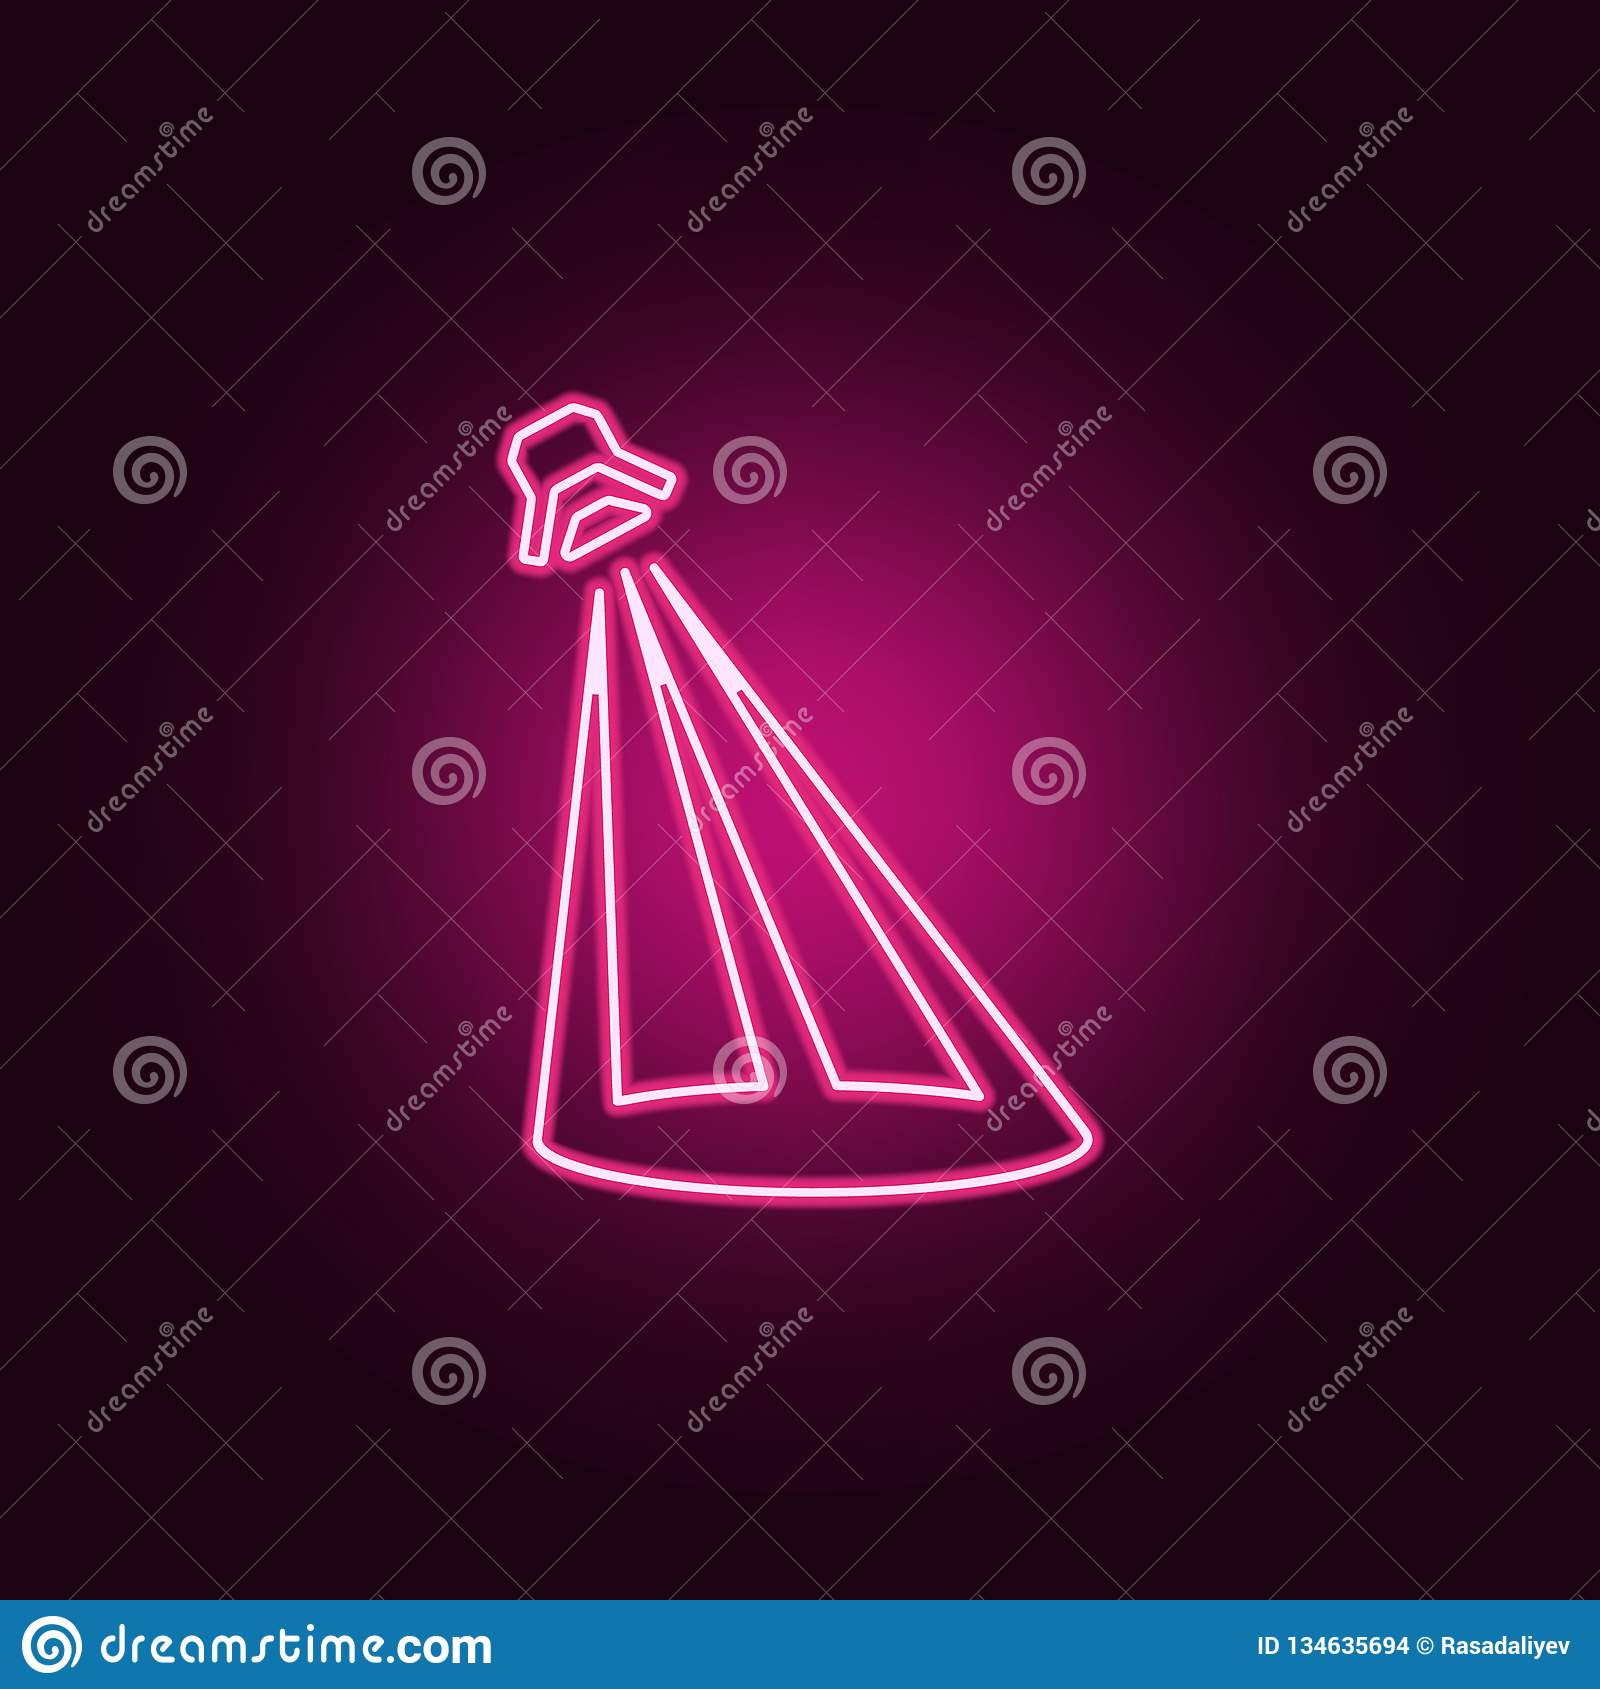 Stage lighting icon elements of spotlight in neon style icons simple icon for websites